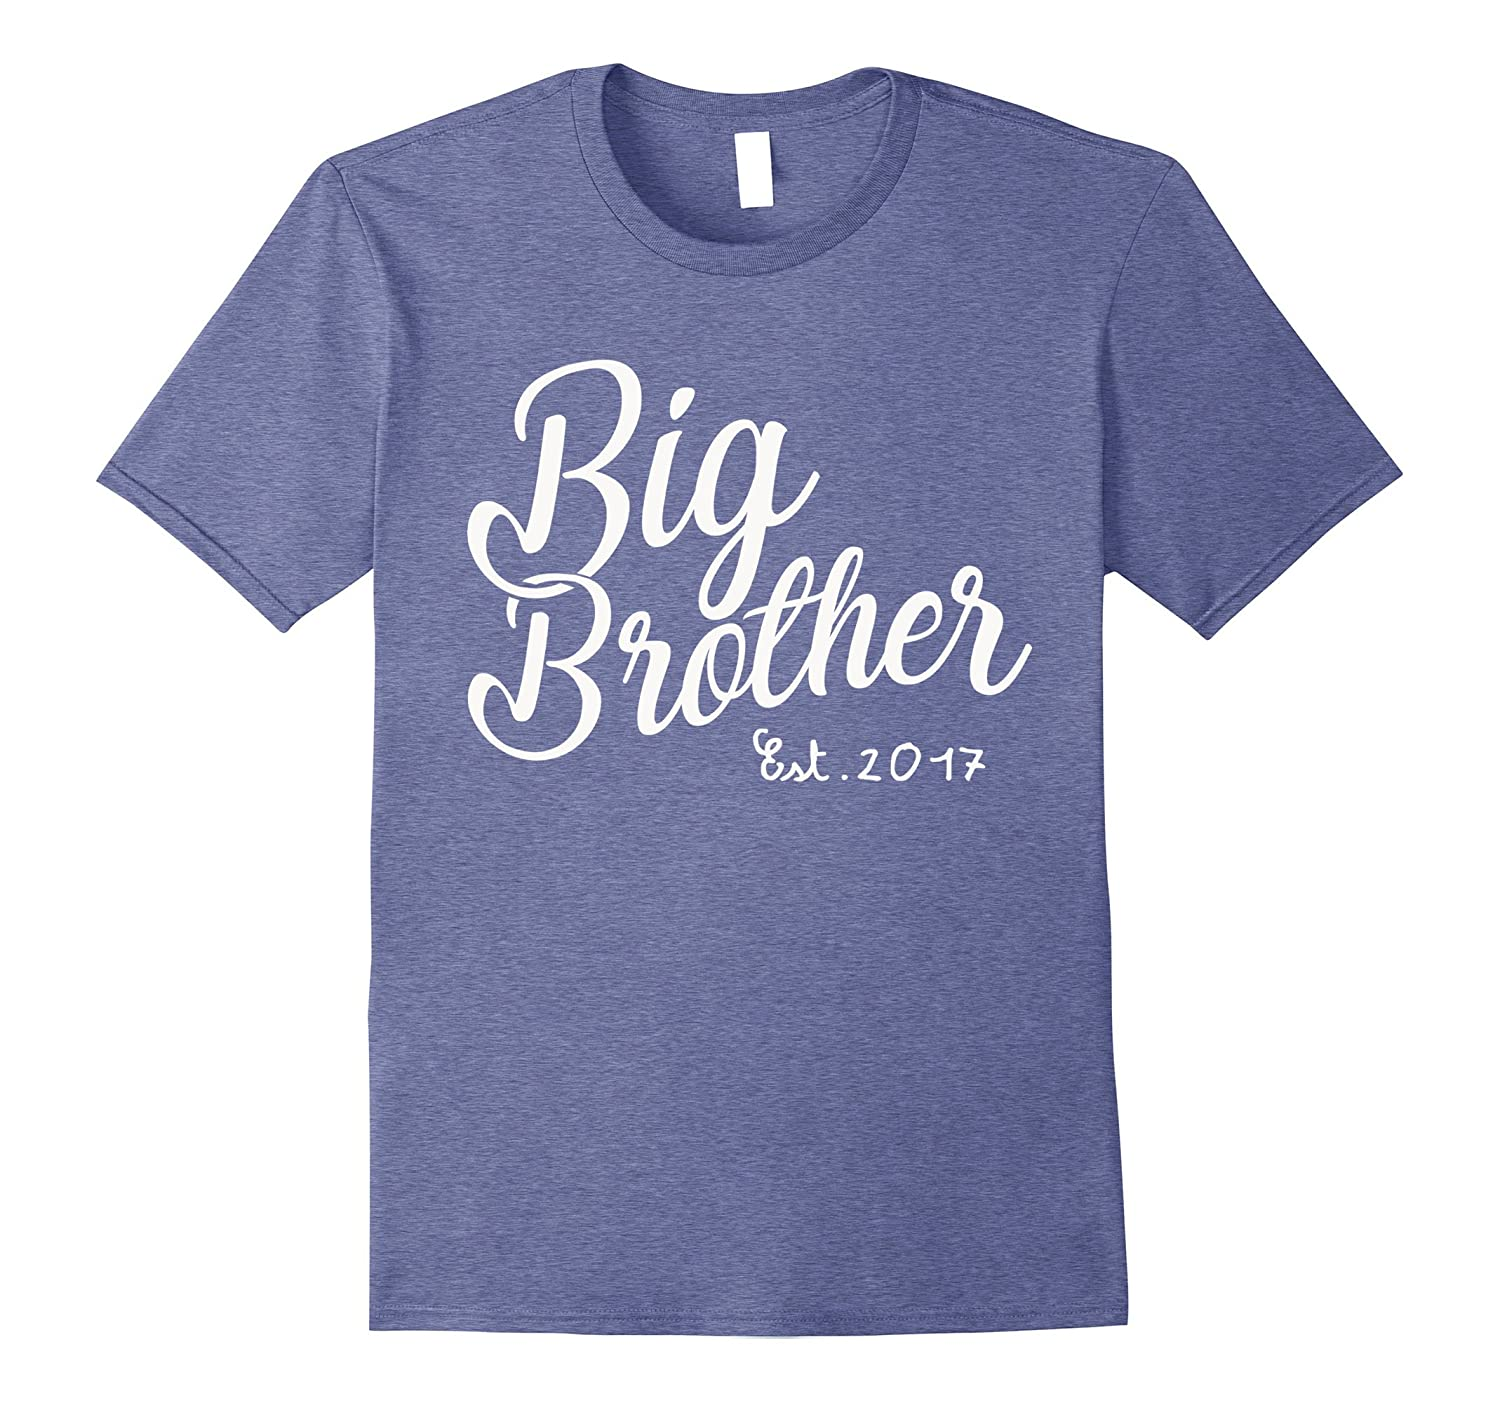 Big Brother Announcement 2017 Shirt for Kids and Adults-FL